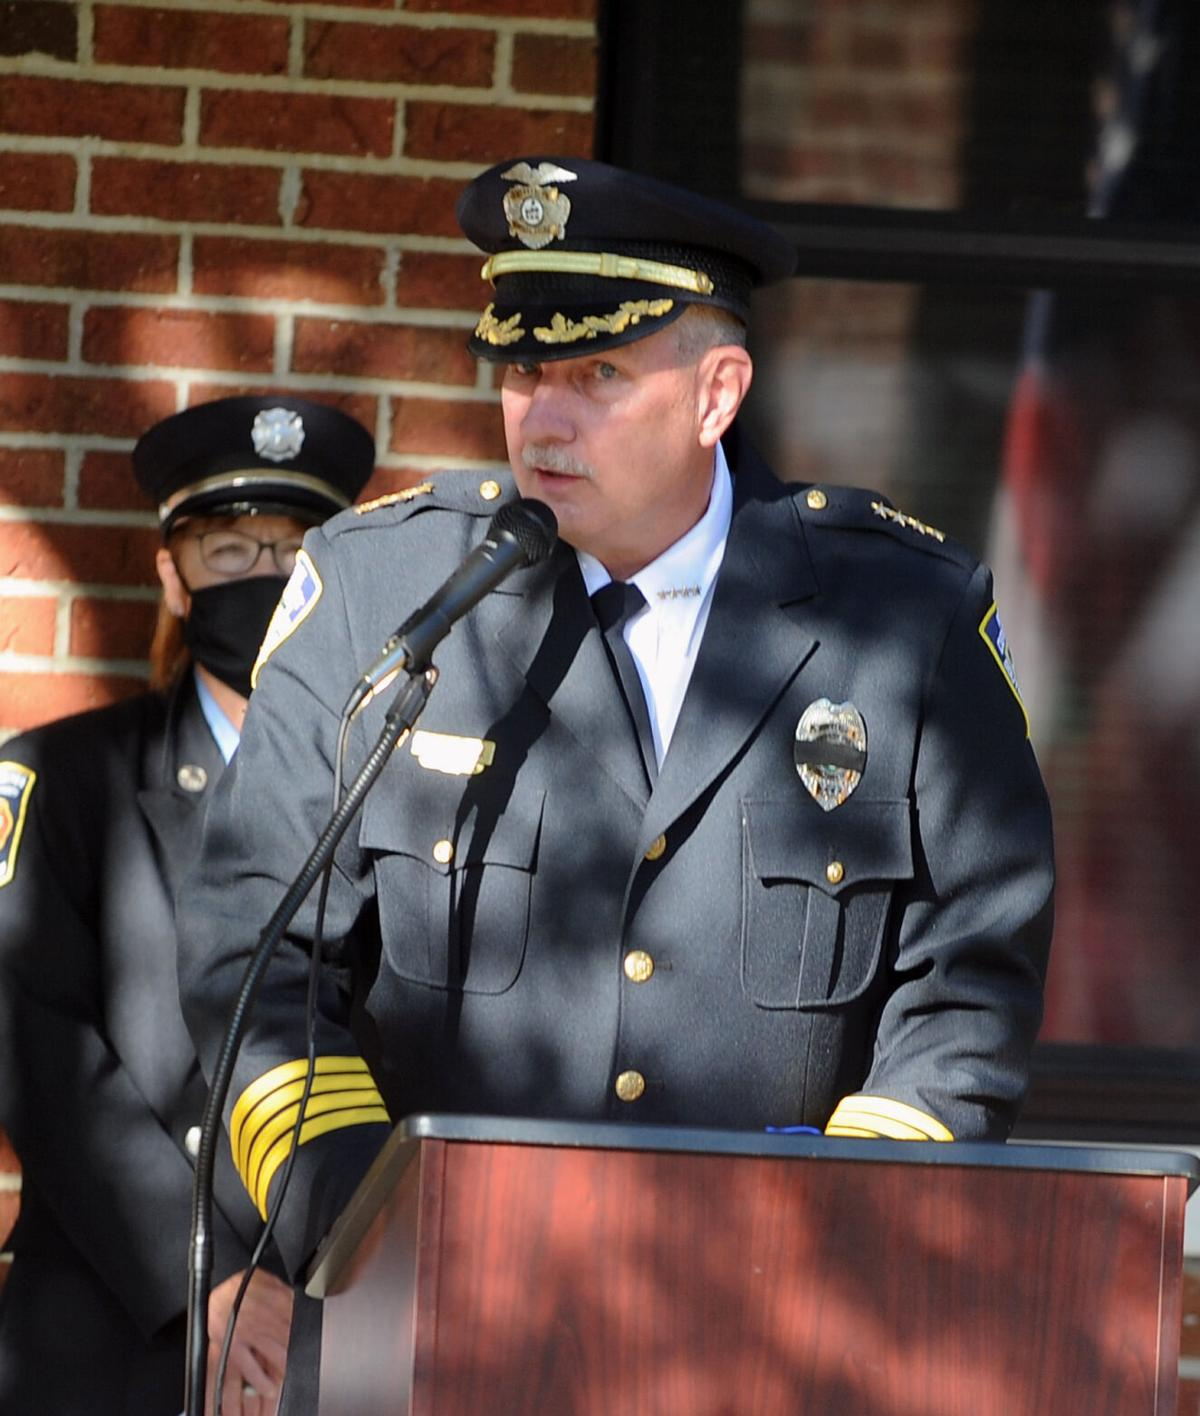 Police Chief Bob Temme speaks during a 9/11 ceremony at the Southern Pines Fire and Rescue Department.